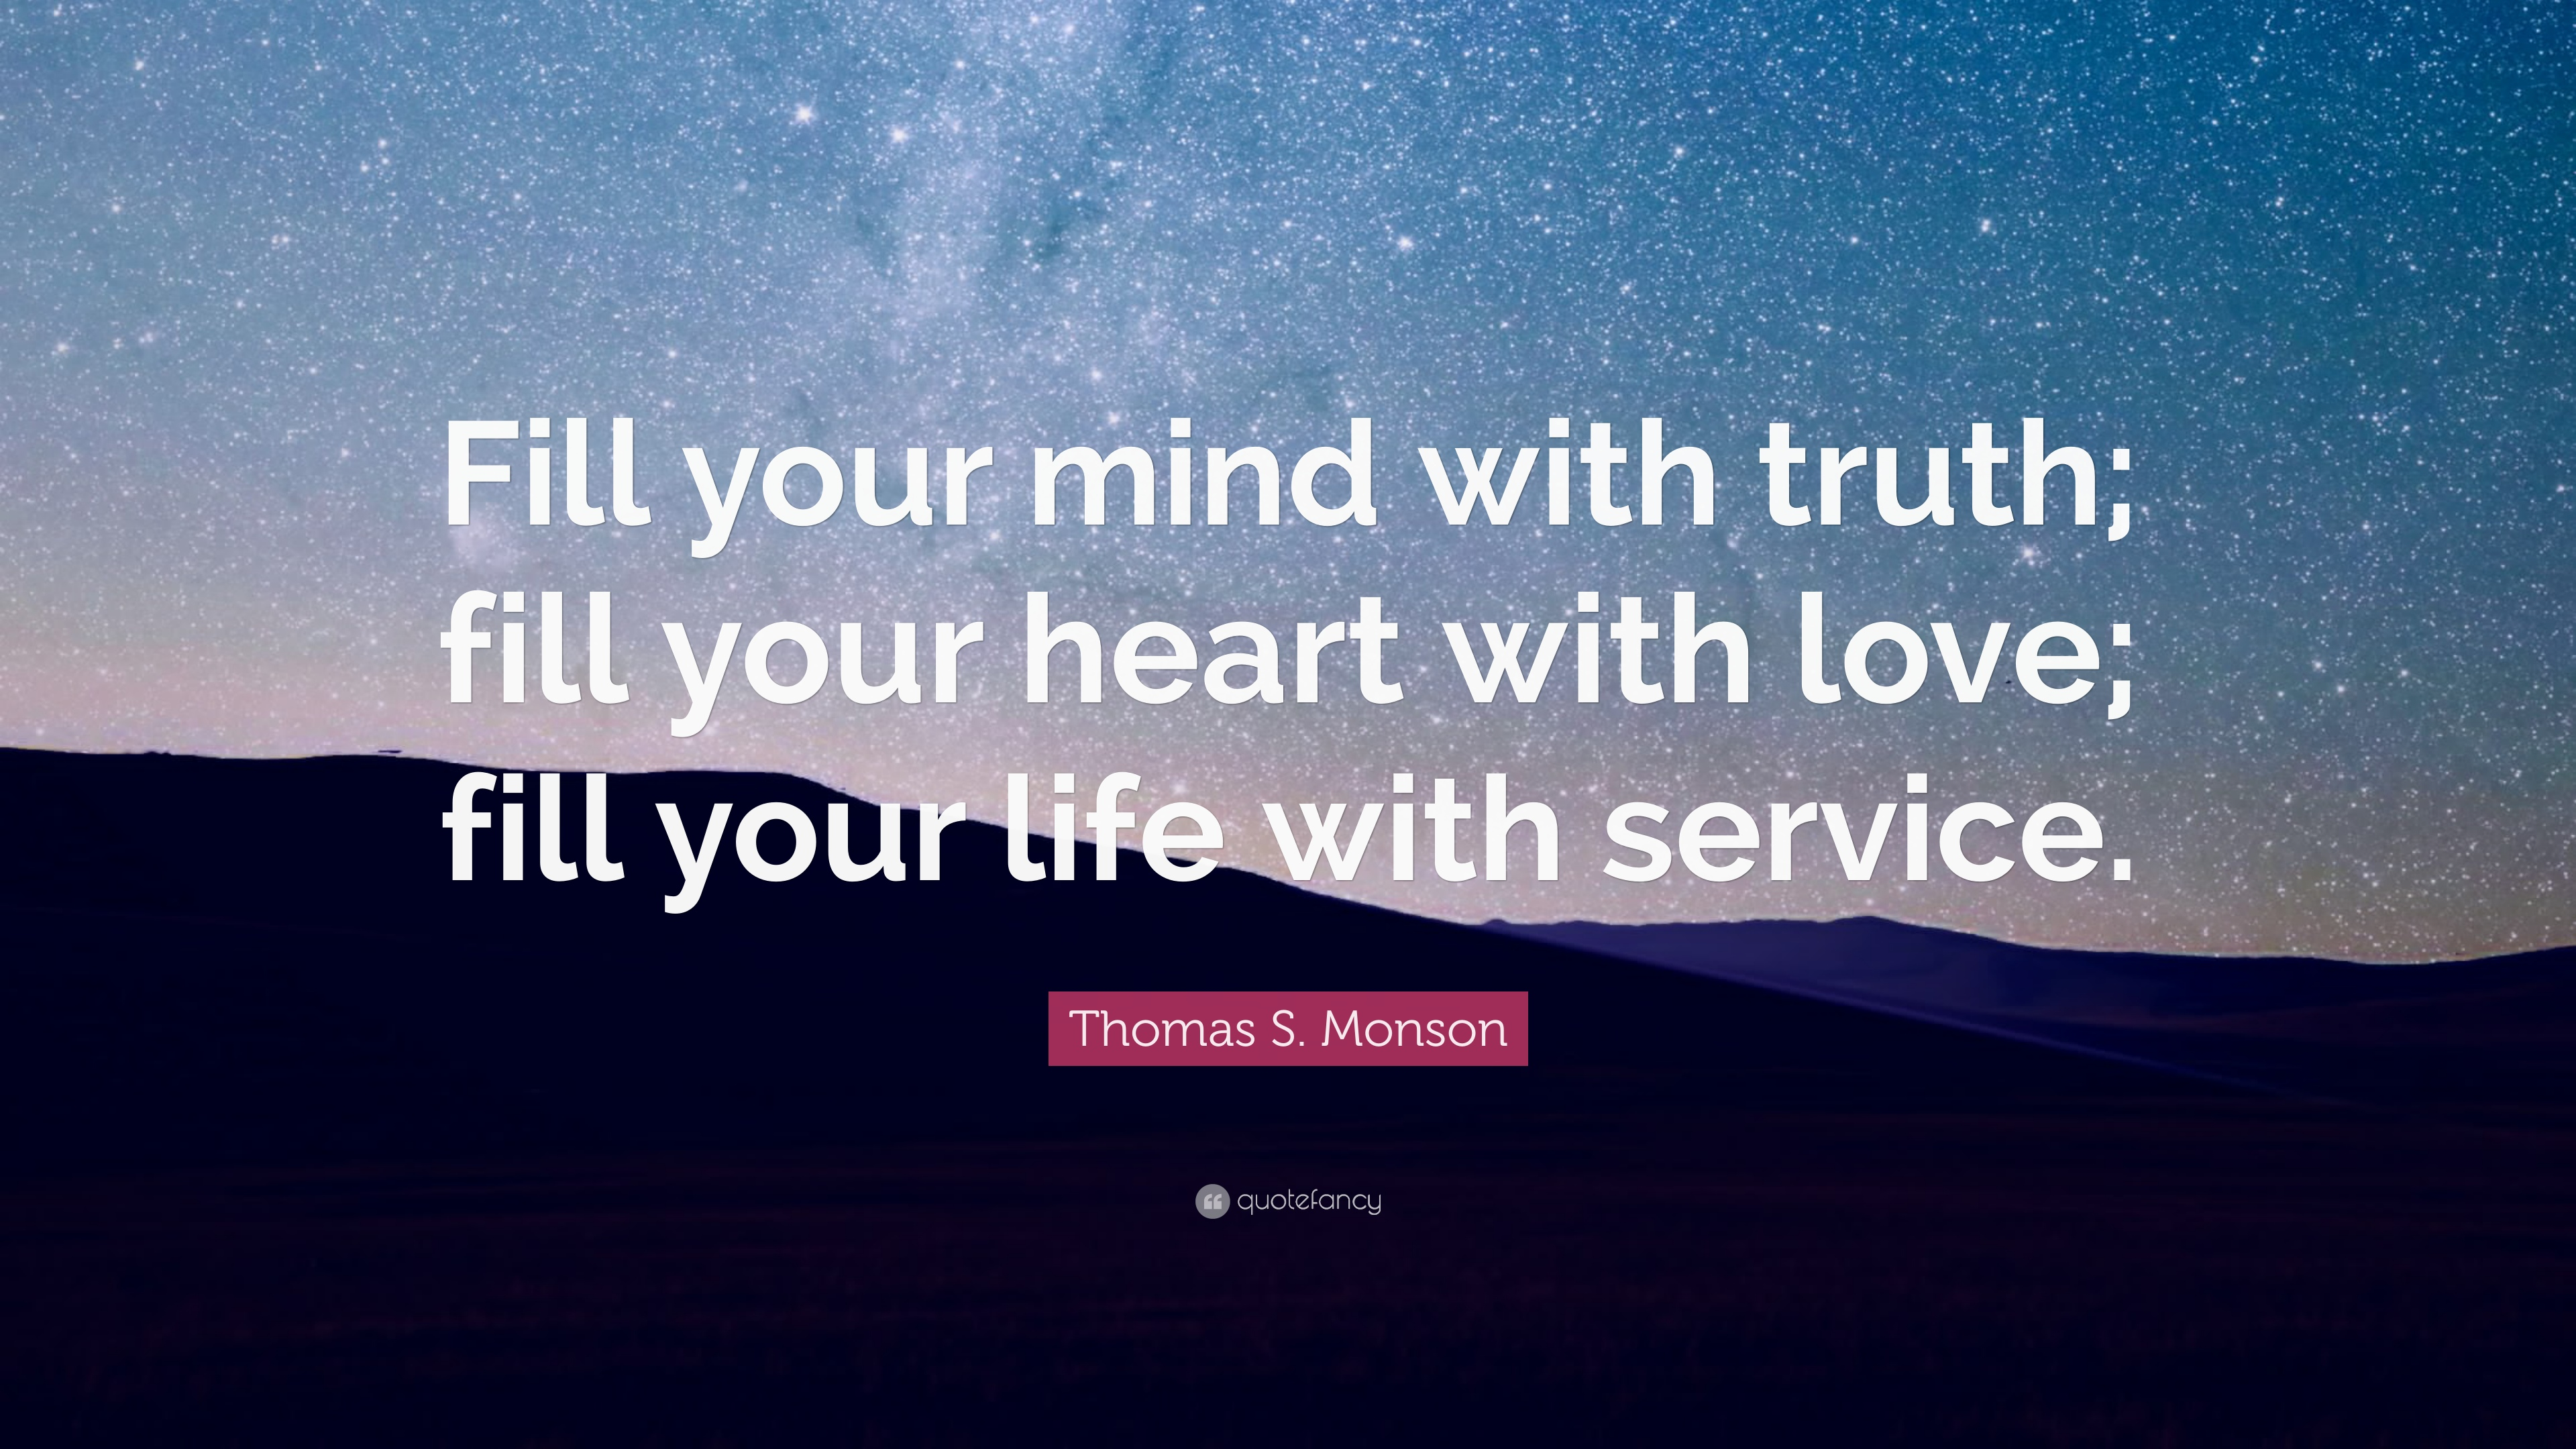 Thomas S Monson Quote Fill Your Mind With Truth Fill Your Heart